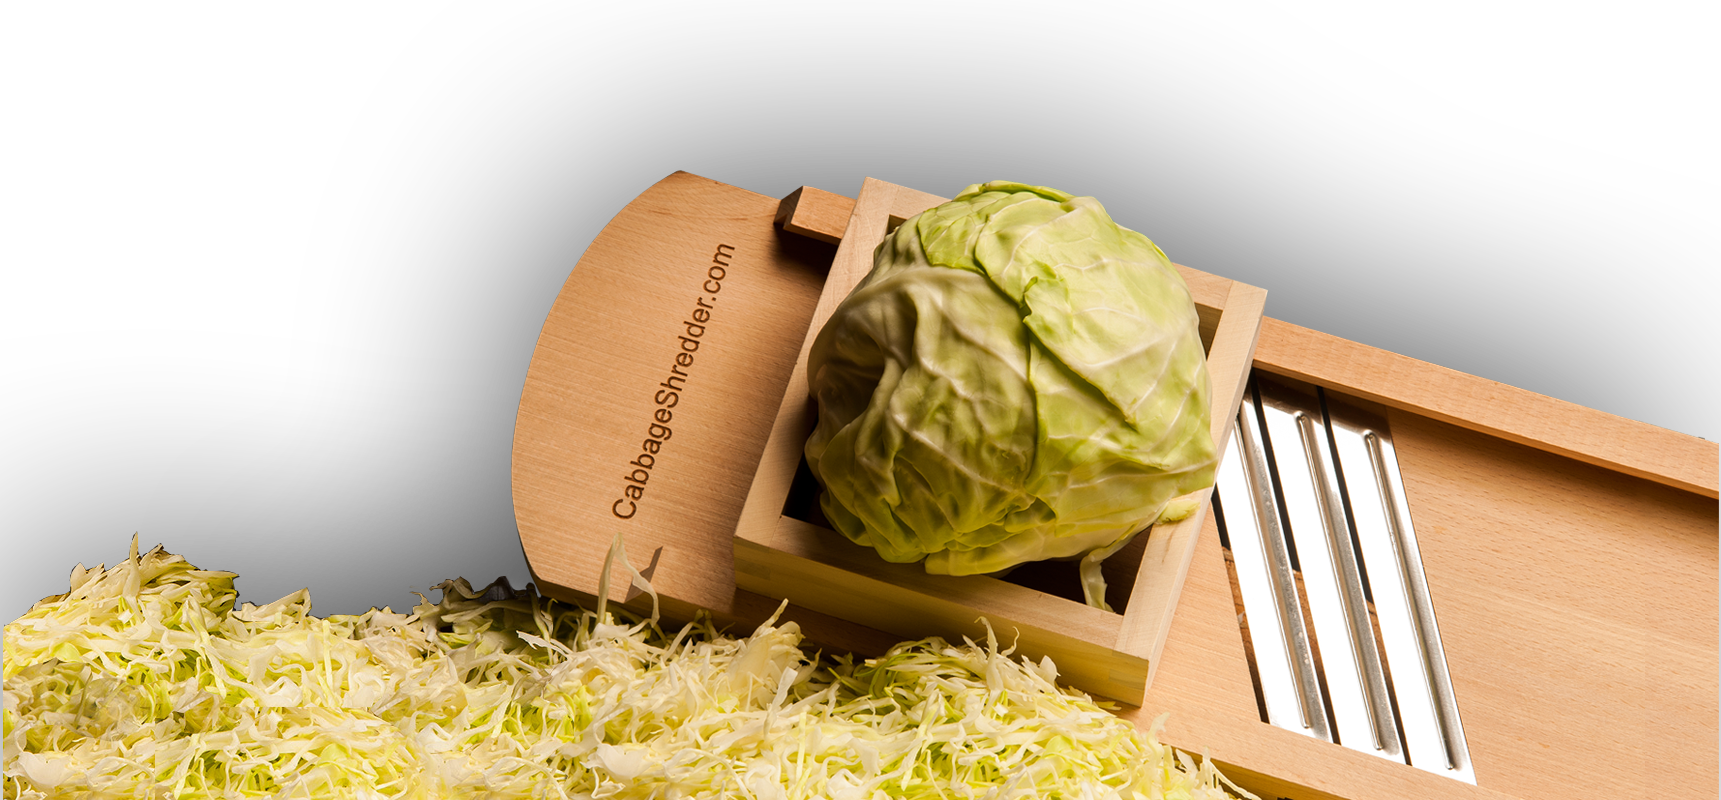 Large wooden cabbage shredder on a pile of finely shredded cabbage